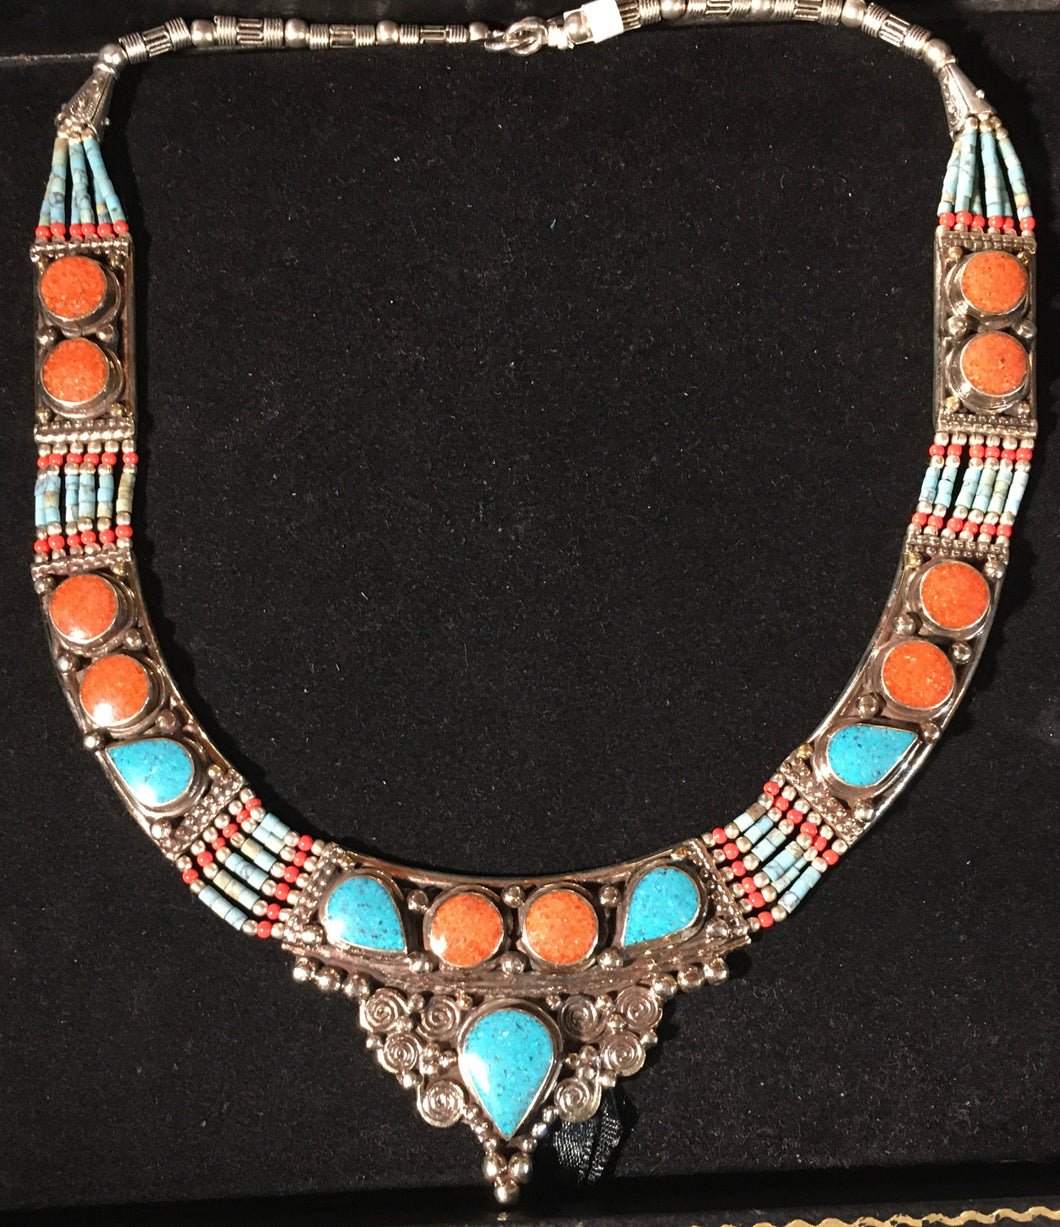 Jewelry-Collar Necklace